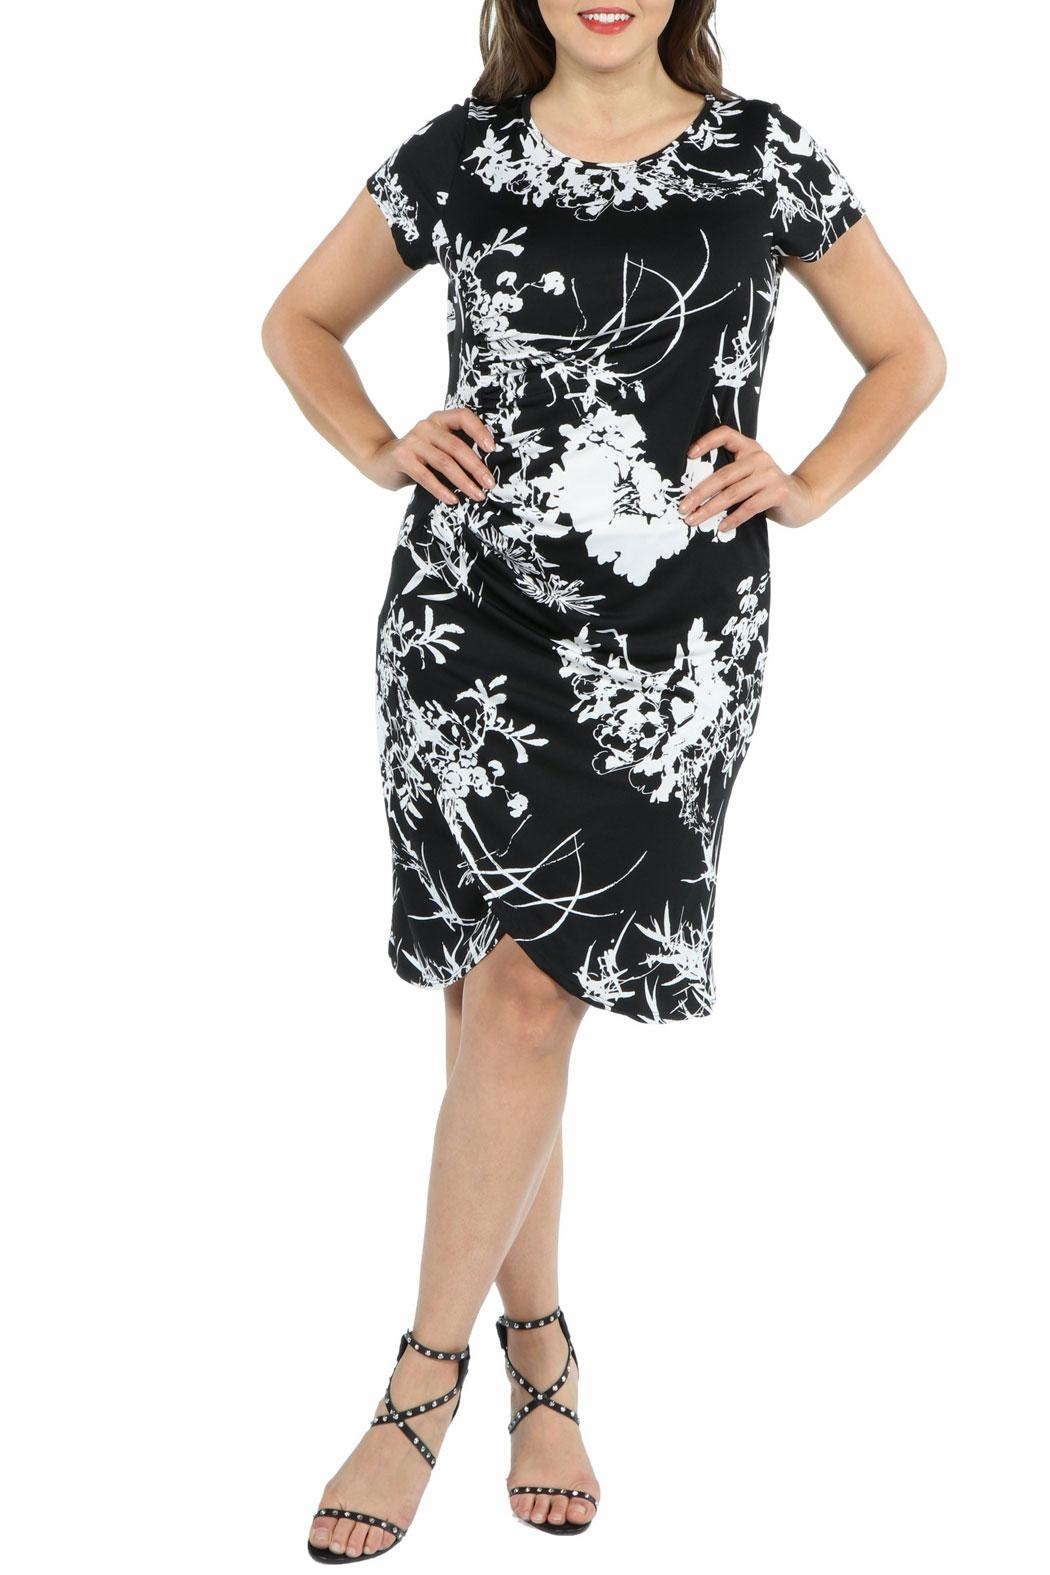 24/7 Comfort Apparel Black Plus Dress - Front Cropped Image